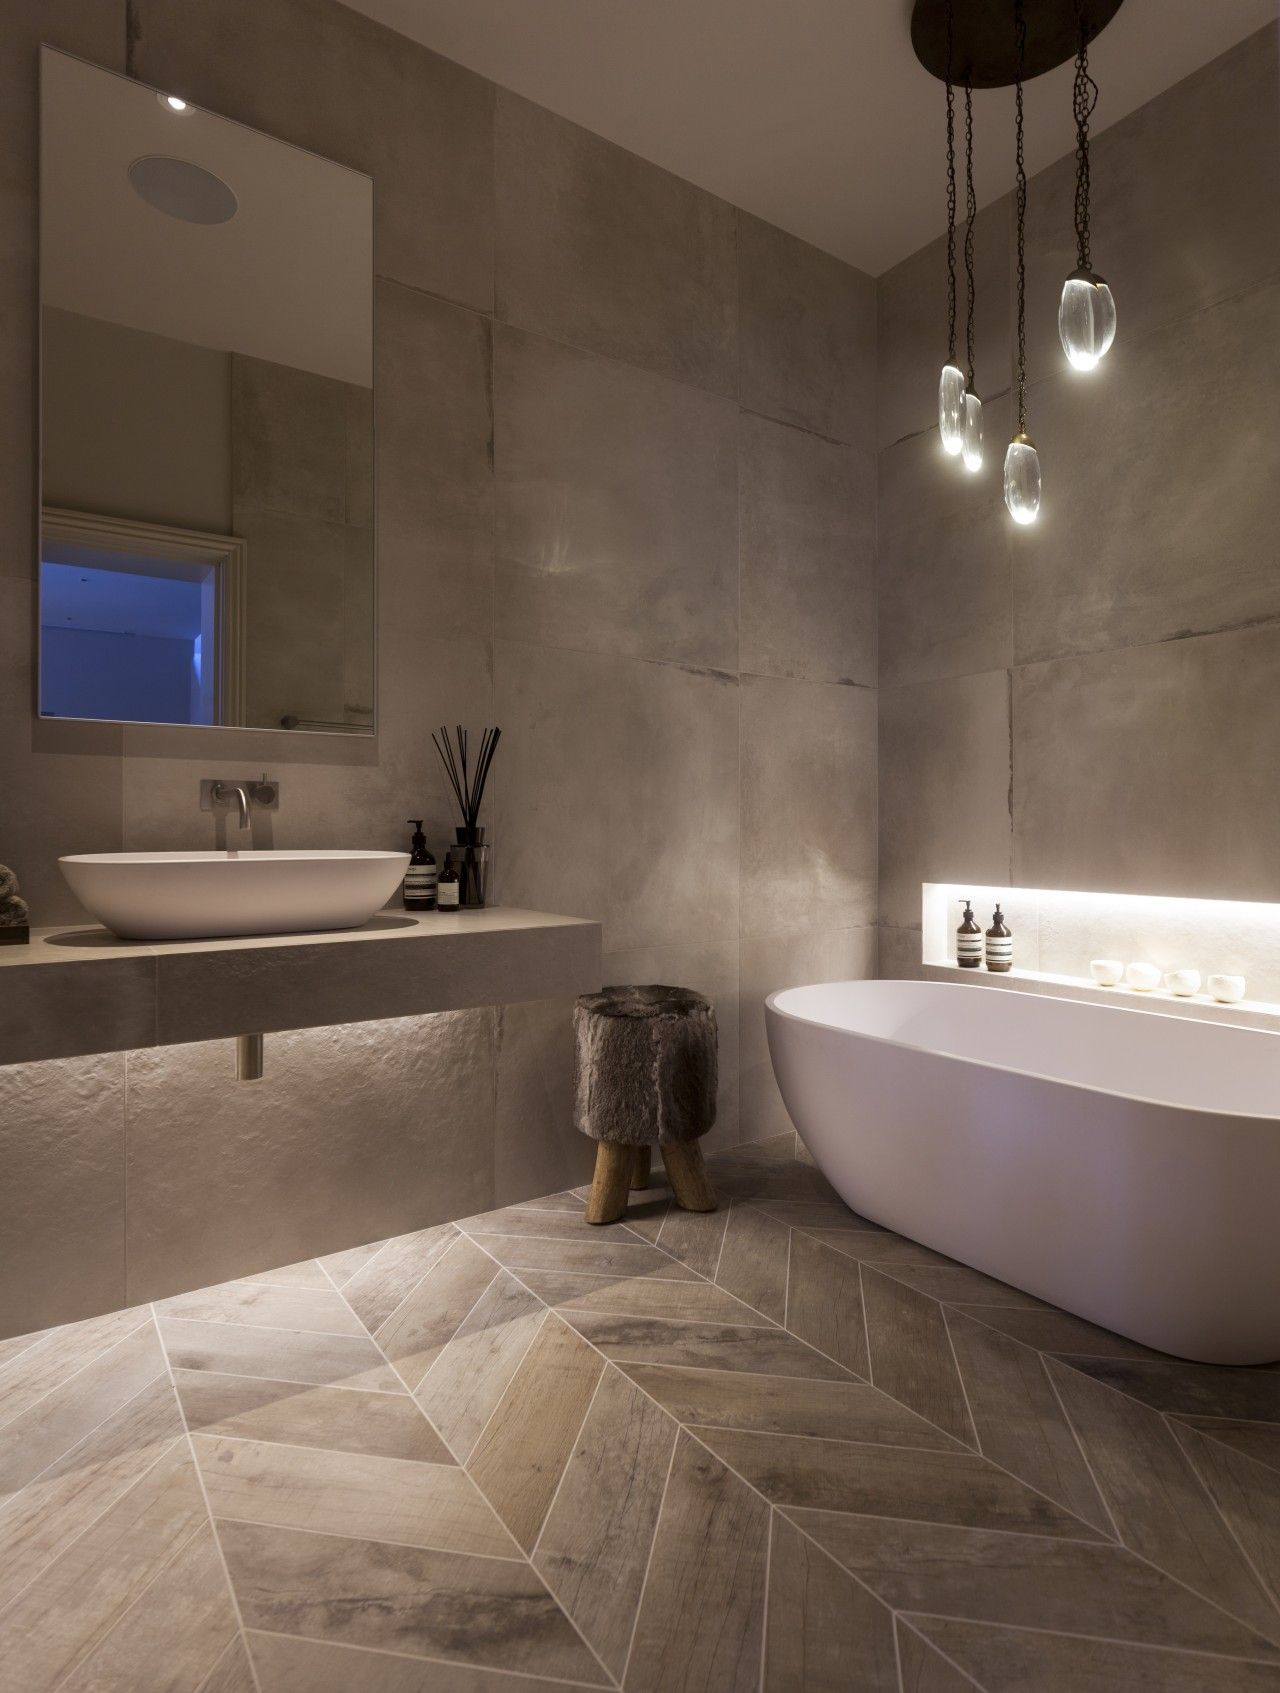 Private residence bath room janey butler interiors for Contemporary luxury bathroom ideas